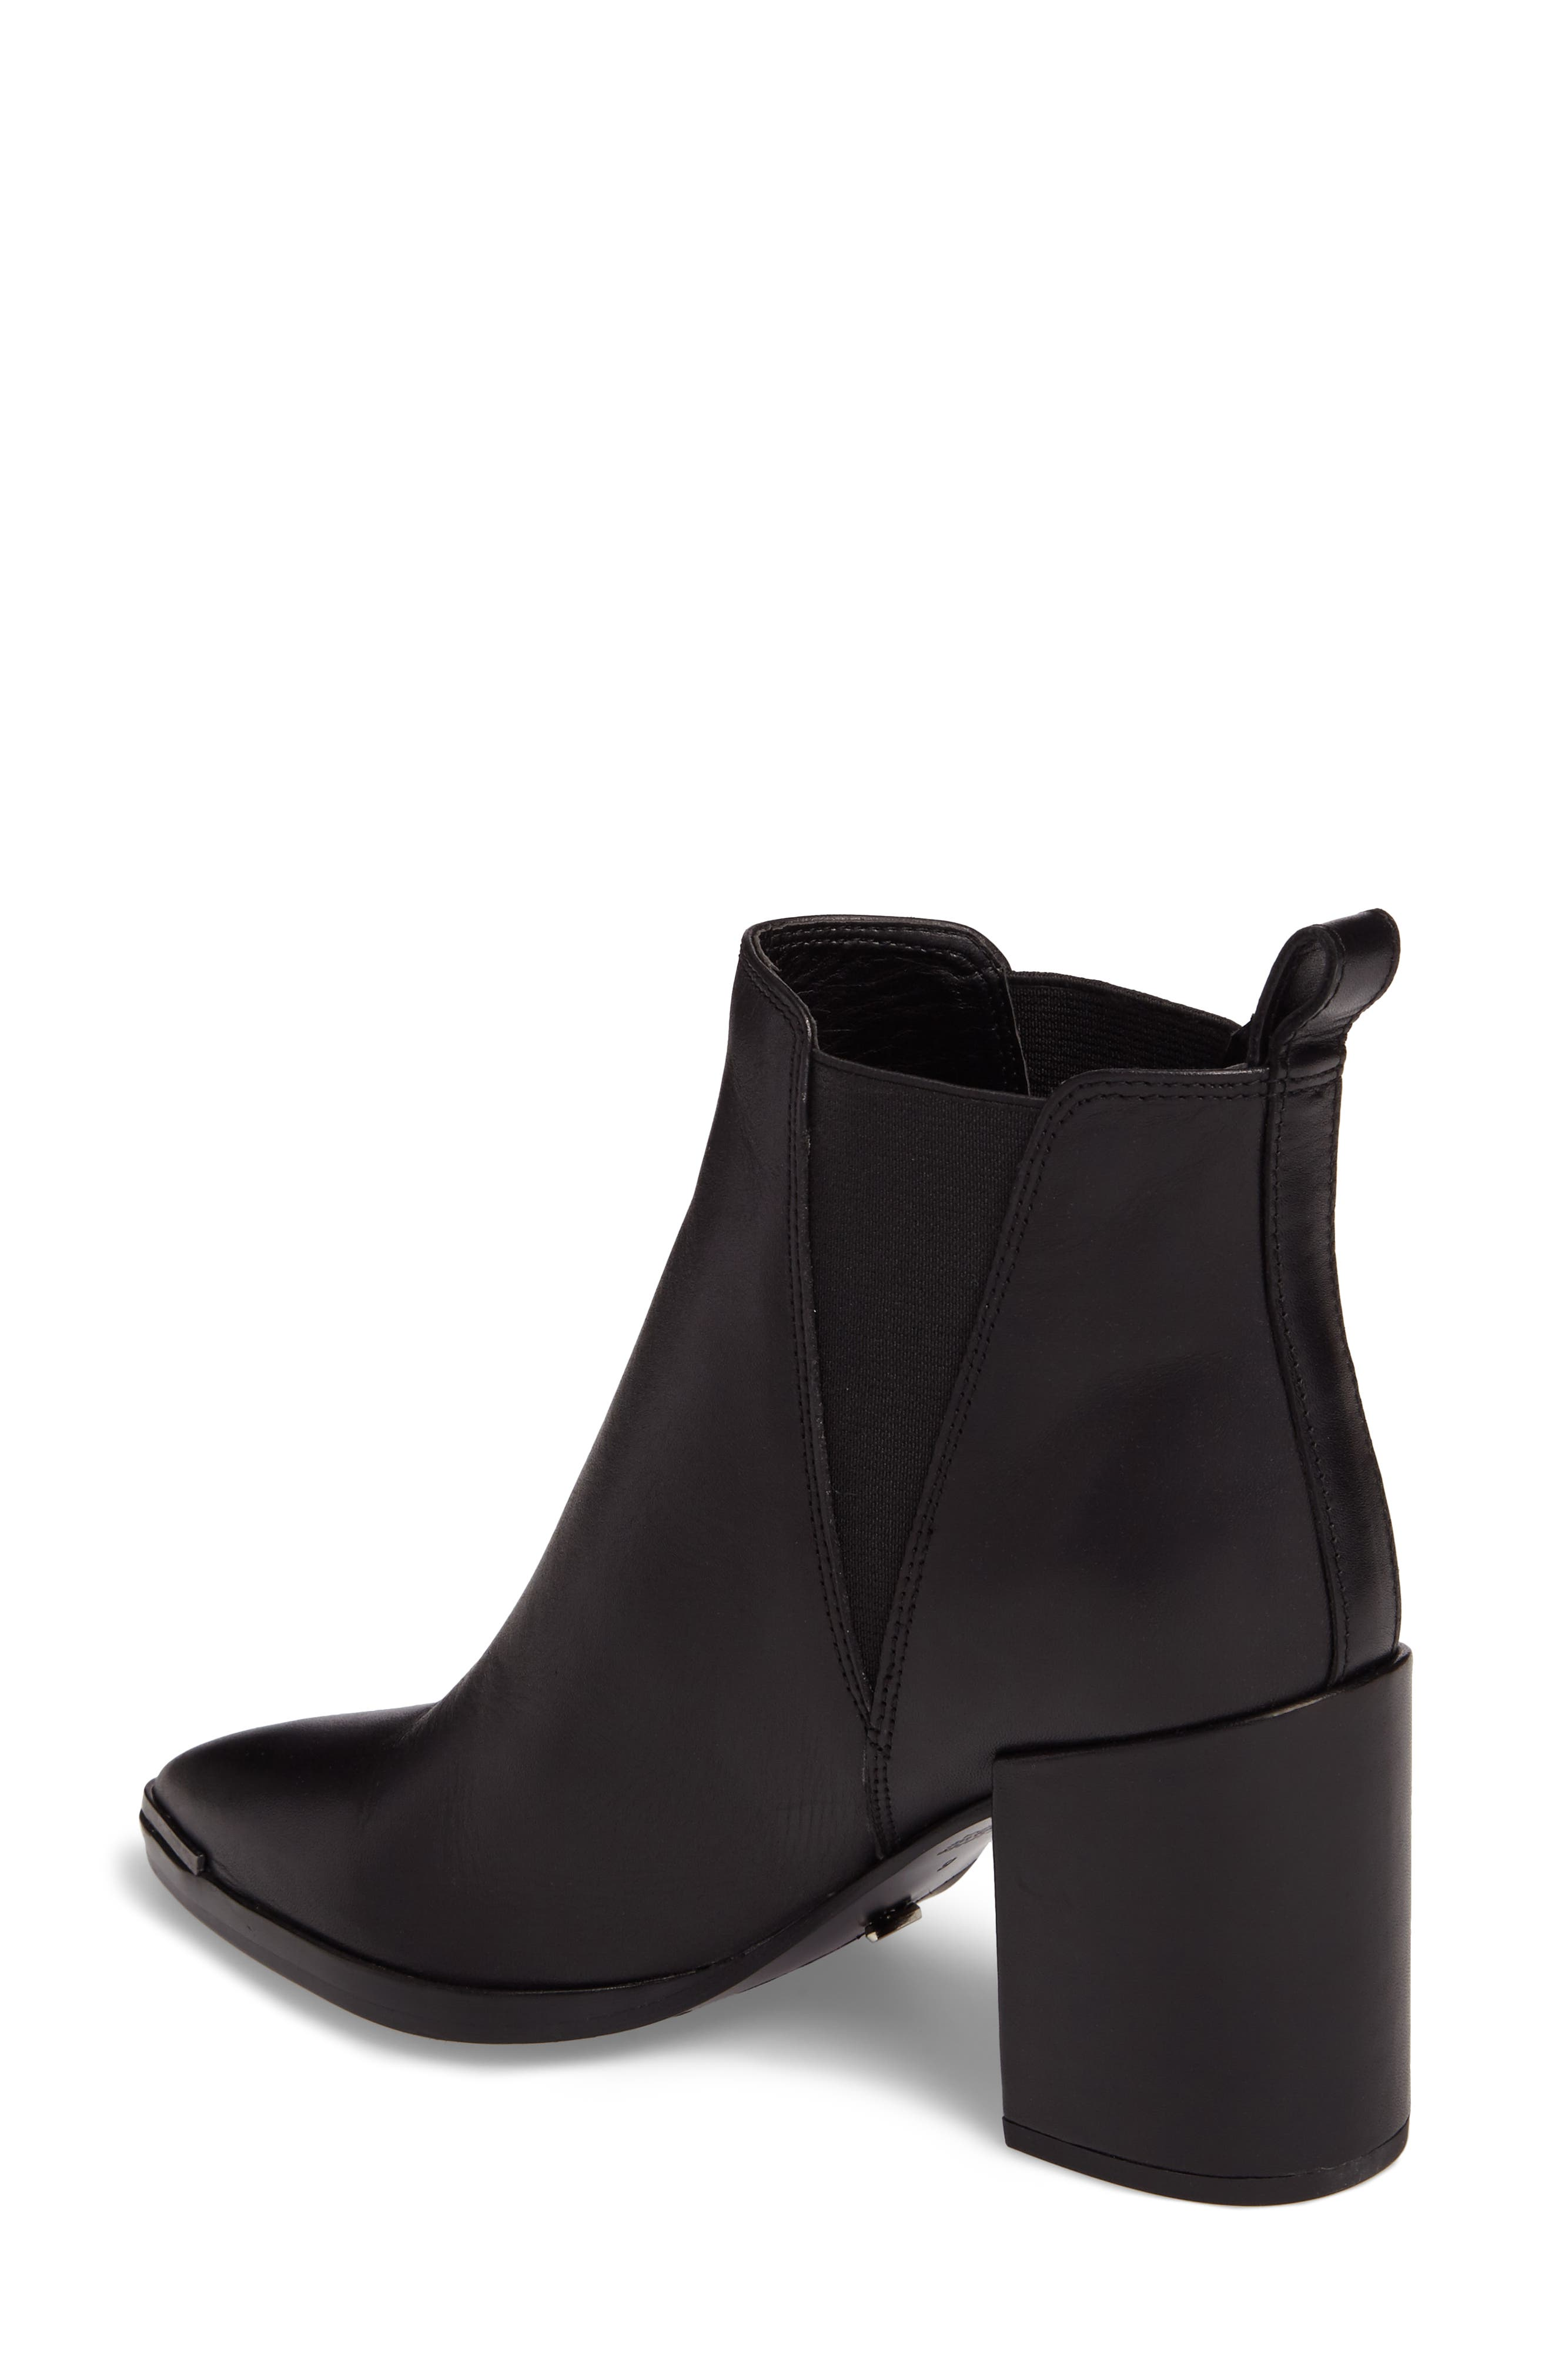 Bello Pointy Toe Bootie,                             Alternate thumbnail 2, color,